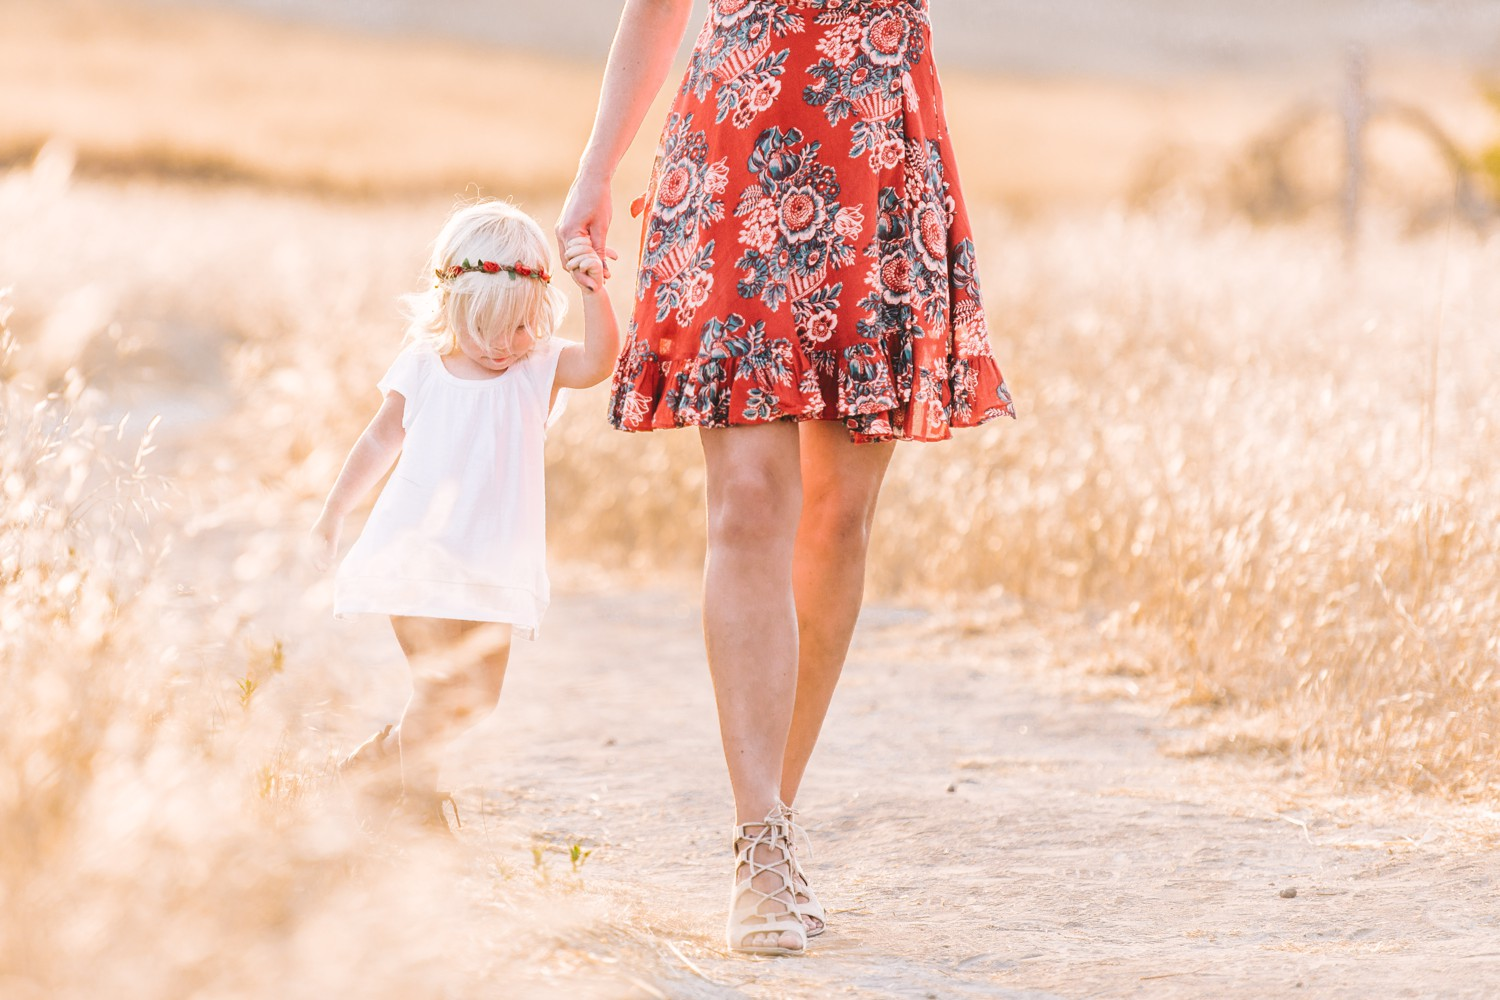 sunset-field-family-mother-daughter-5_web